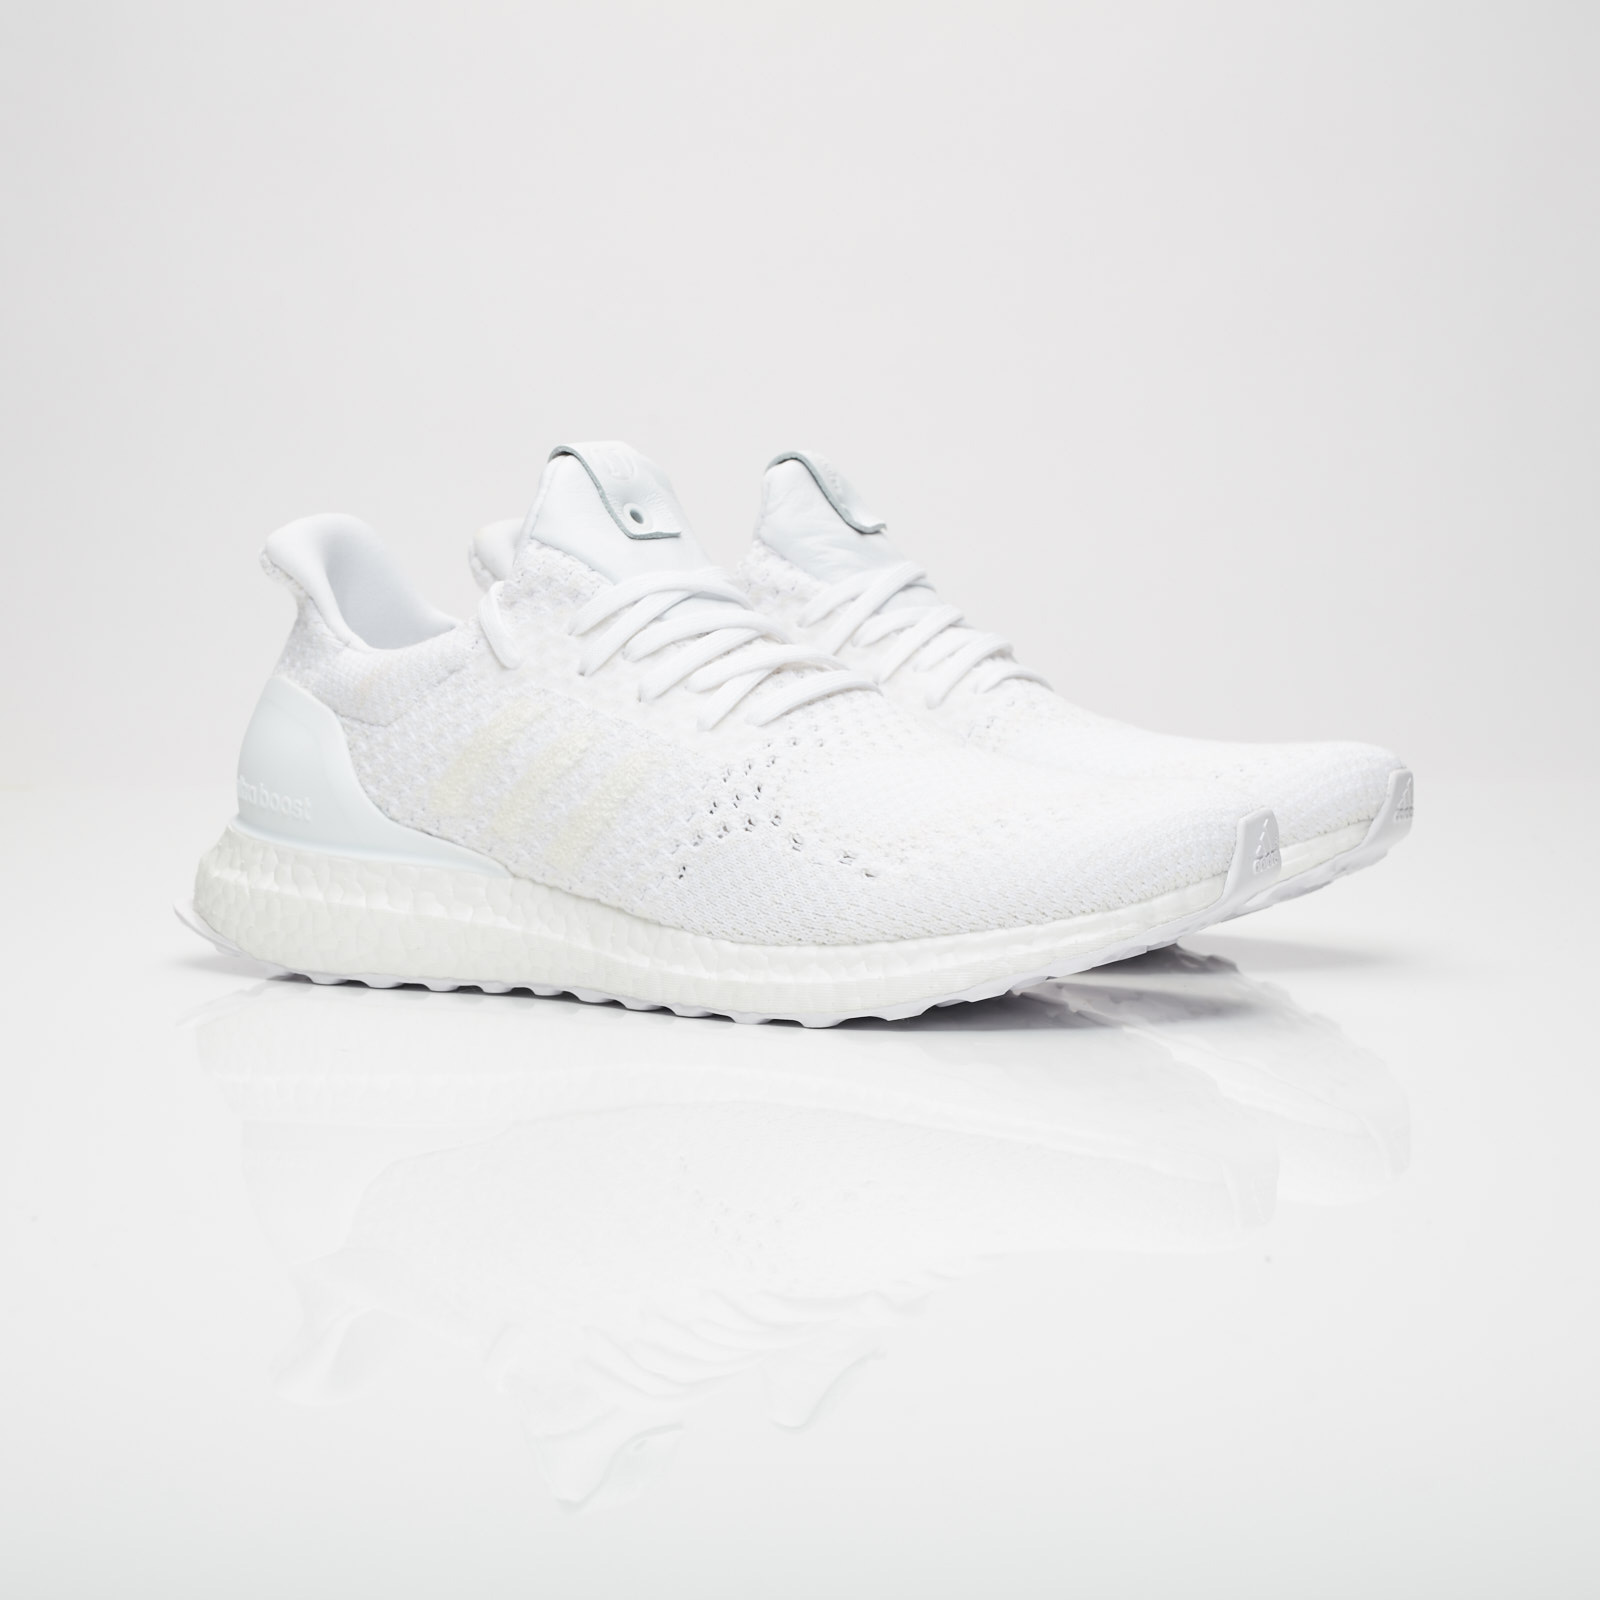 sports shoes 39c3c 4d50c adidas Consortium UltraBoost   A Ma Maniere x Invincible